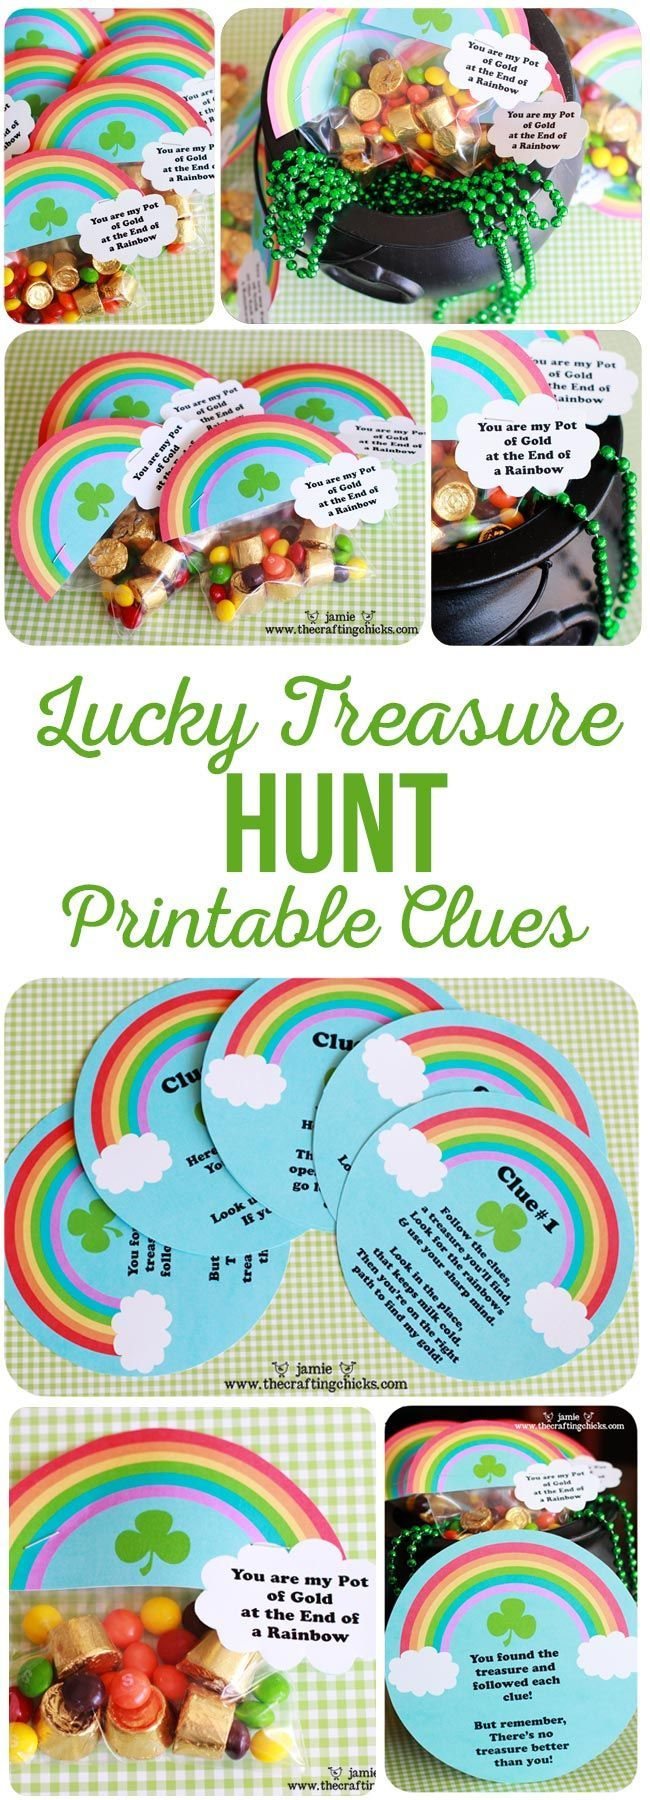 St. Patrick's Day Lucky Treasure Hunt & Treat Toppers. Printable clues for a Lucky Treasure Hunt. Fun for St. Patrick's Day! via @craftingchicks